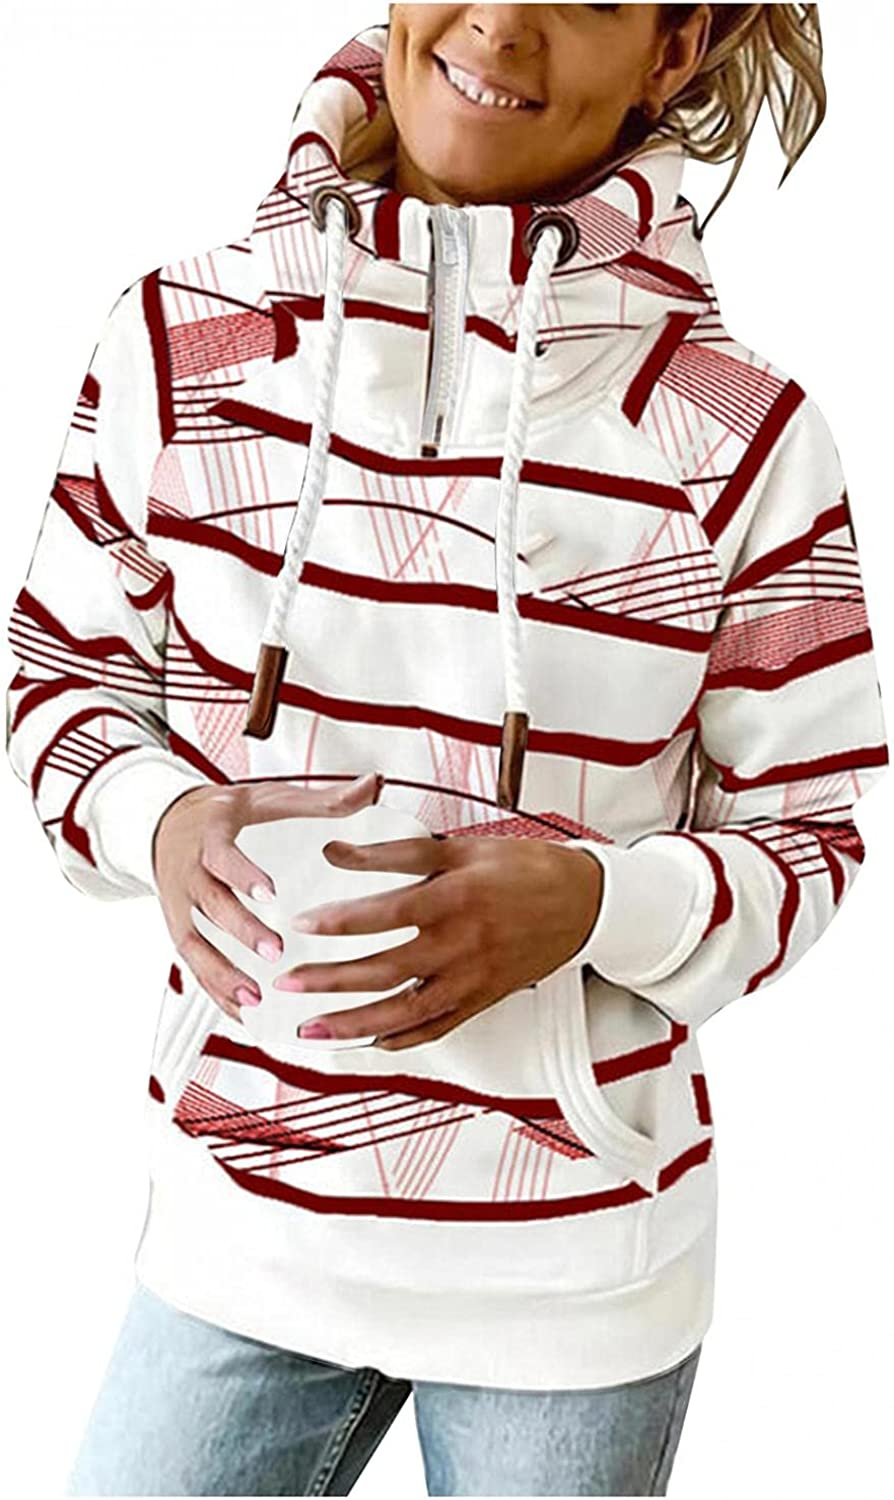 AODONG Hooded Sweatshirts for Women Casual Lightweight 1/4 Zipper Loose Long Sleeve Striped Hoodies Pullover with Pocket